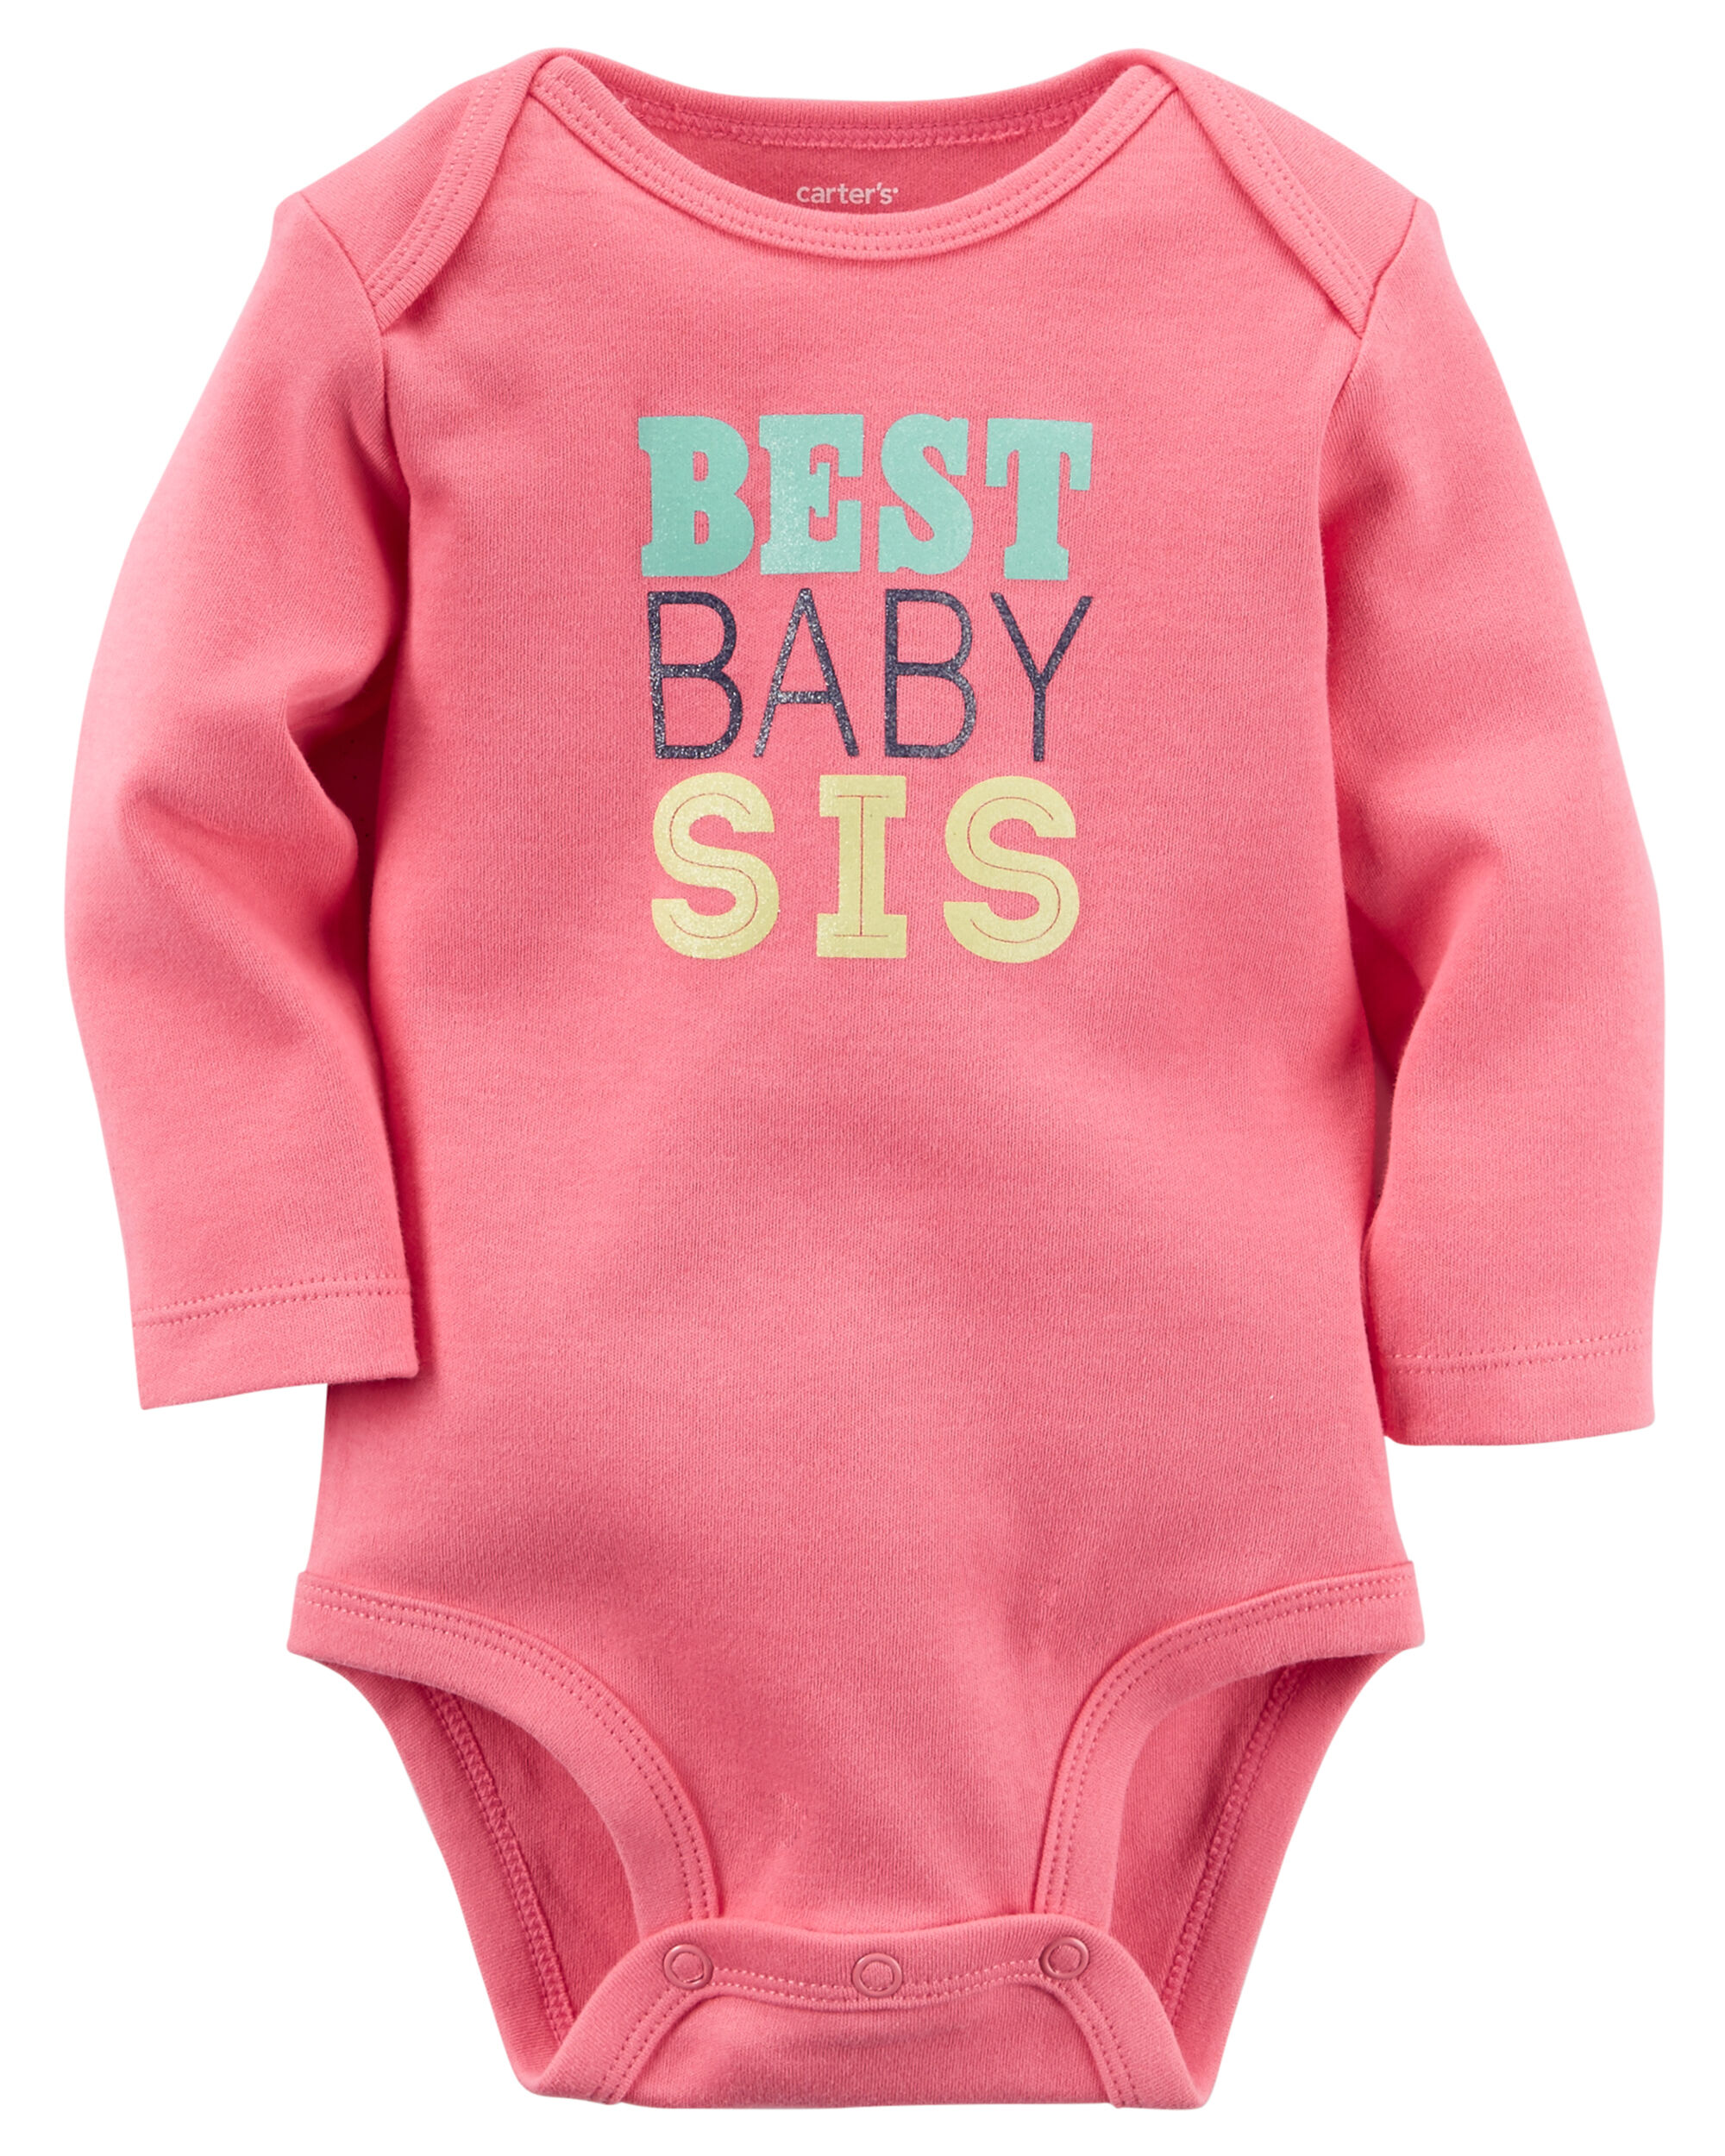 Best Baby Sis Collectible Bodysuit